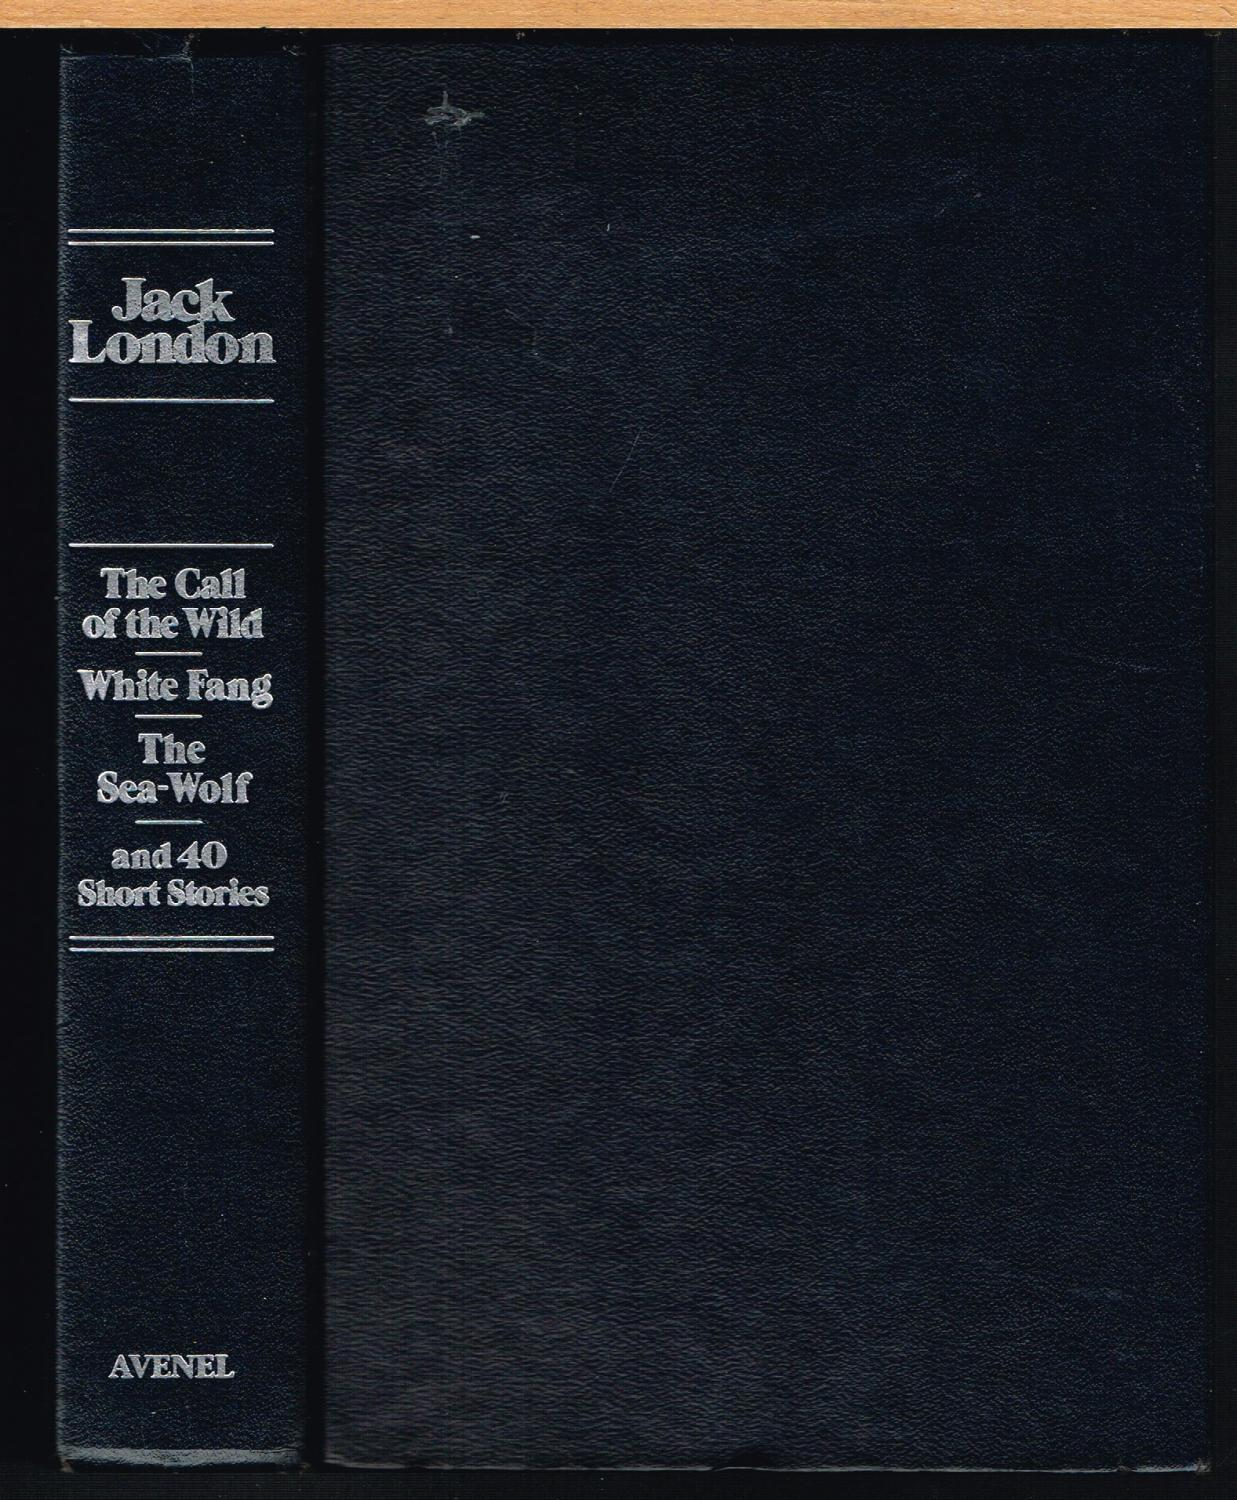 Jack London Illustrated Call Of The Wild White Fang Sea